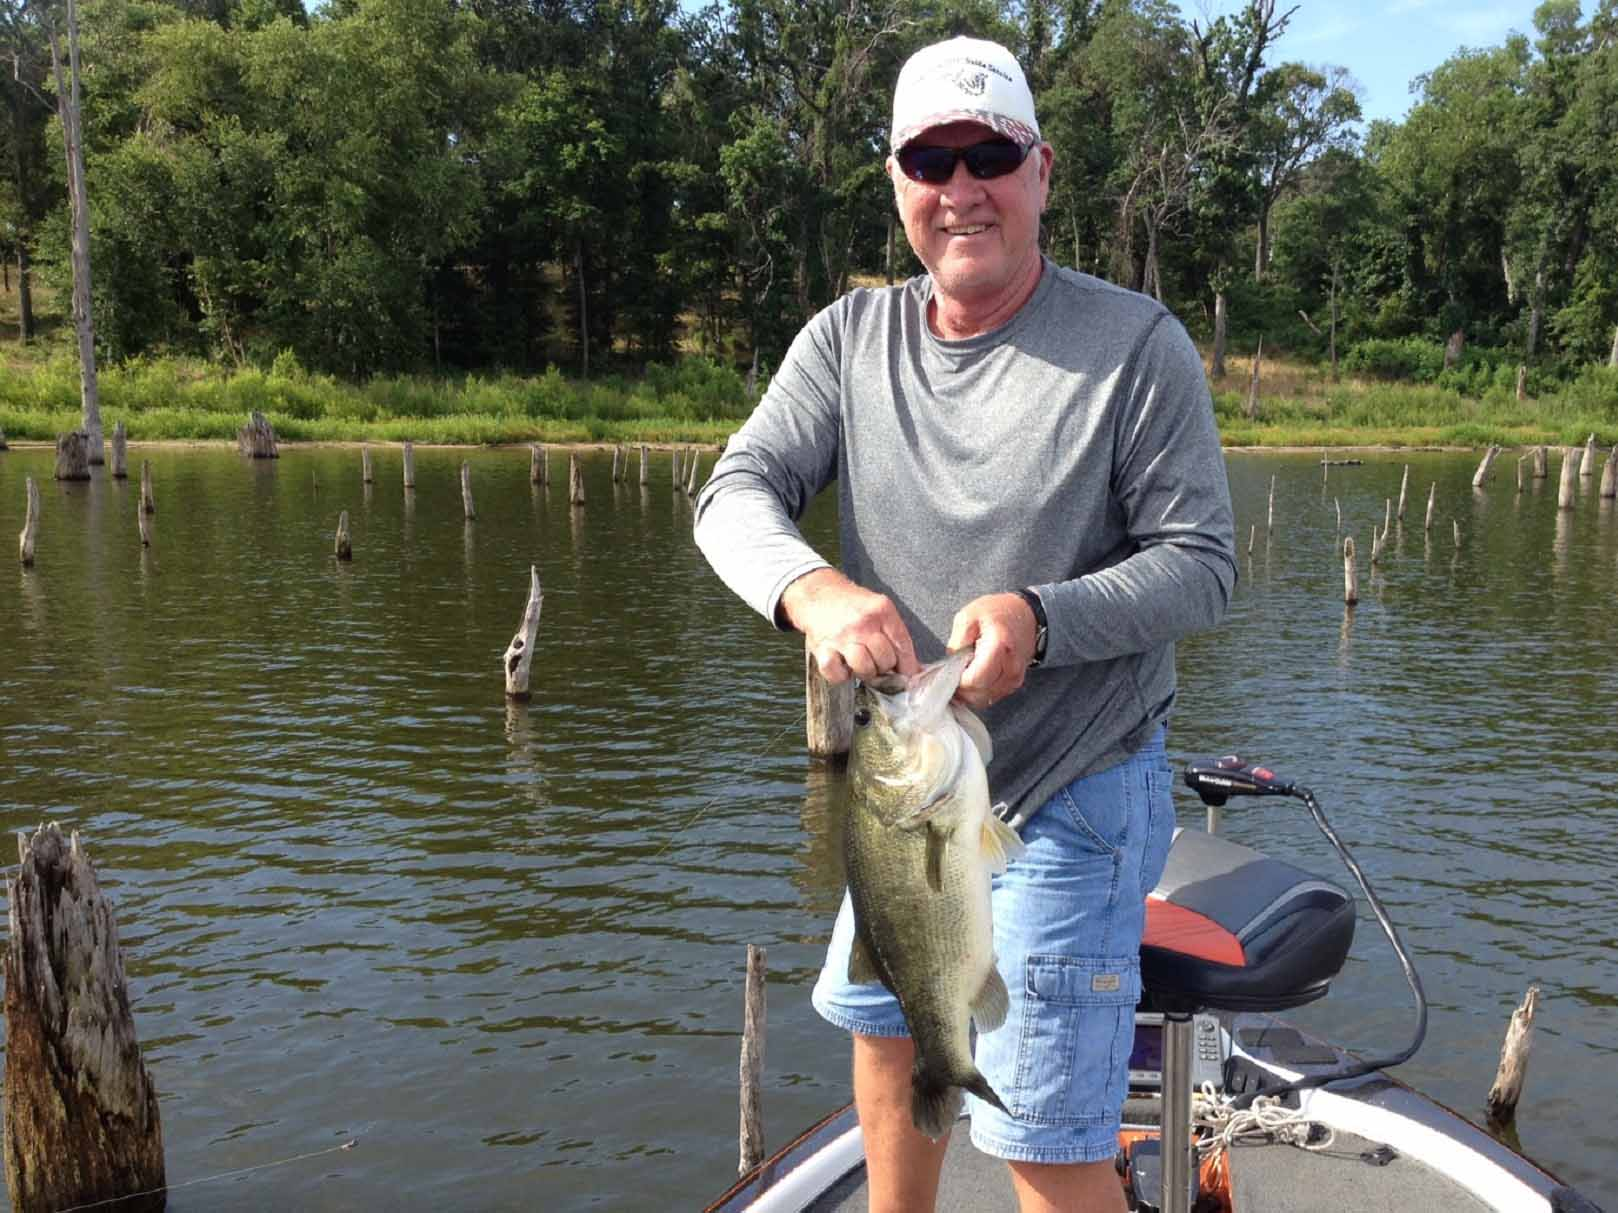 There are 8 steps to catching more fish.